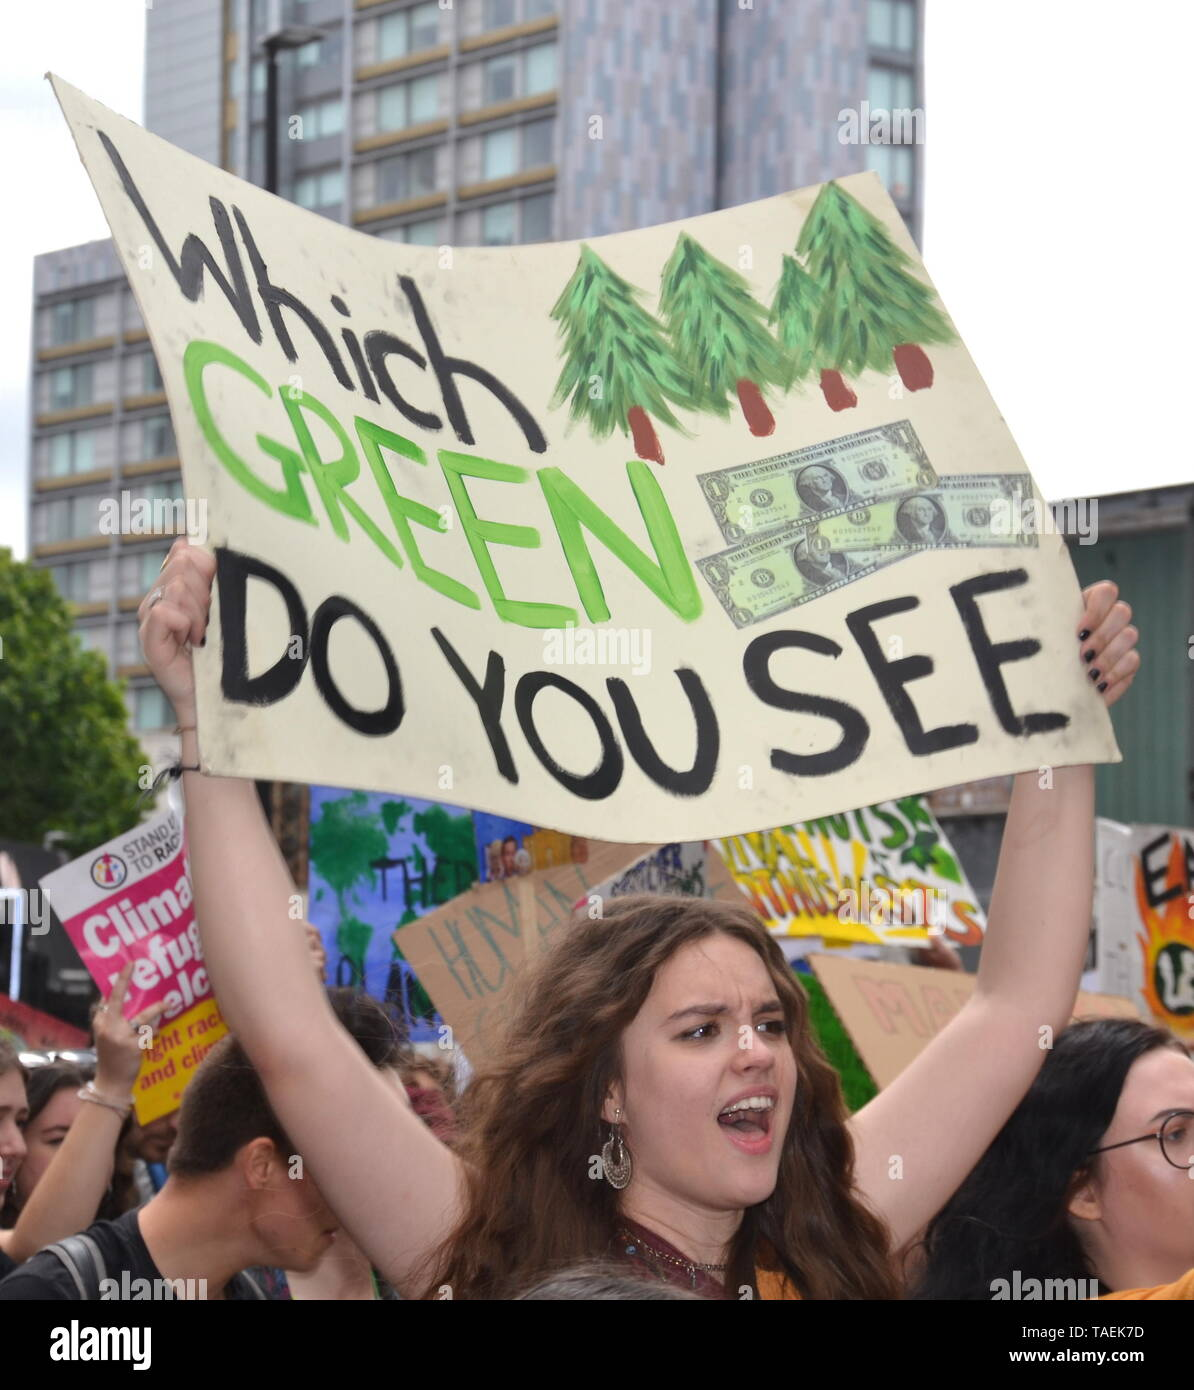 Young people lobby for action to prevent climate change at the  Manchester Youth Strike 4 Climate protest on 24th May, 2019, in Manchester, uk Stock Photo